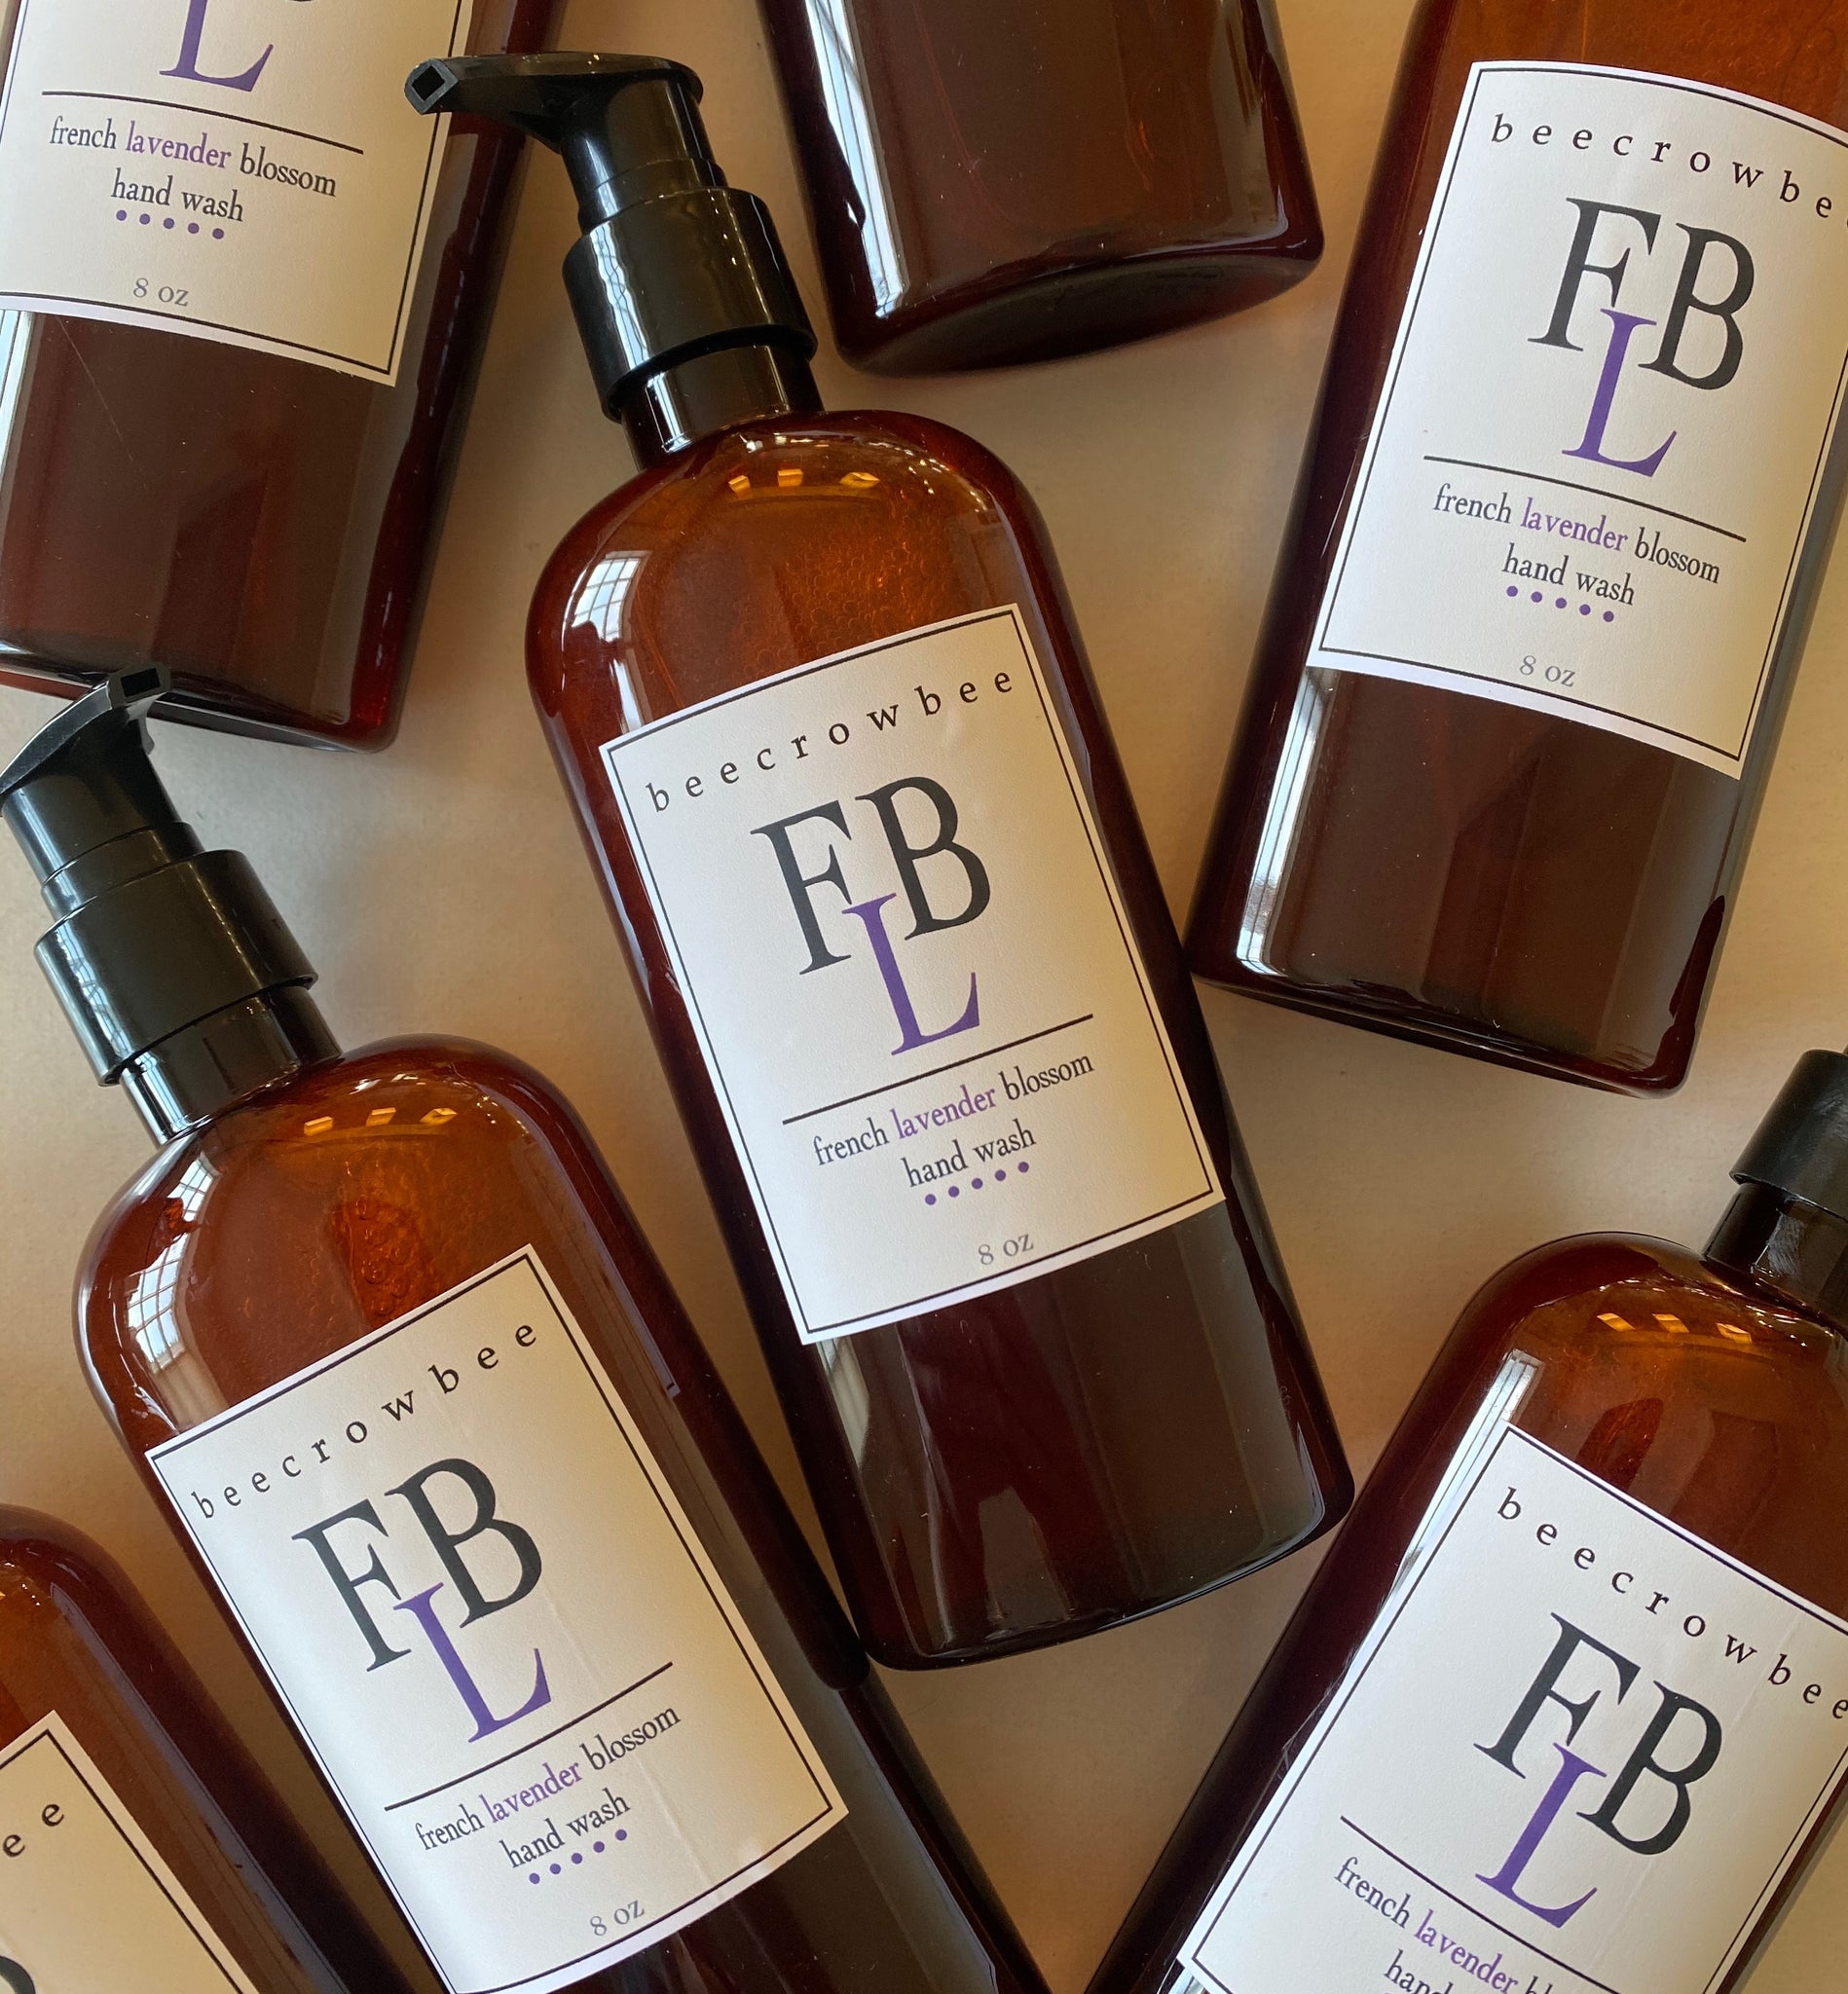 french lavender blossom hand wash